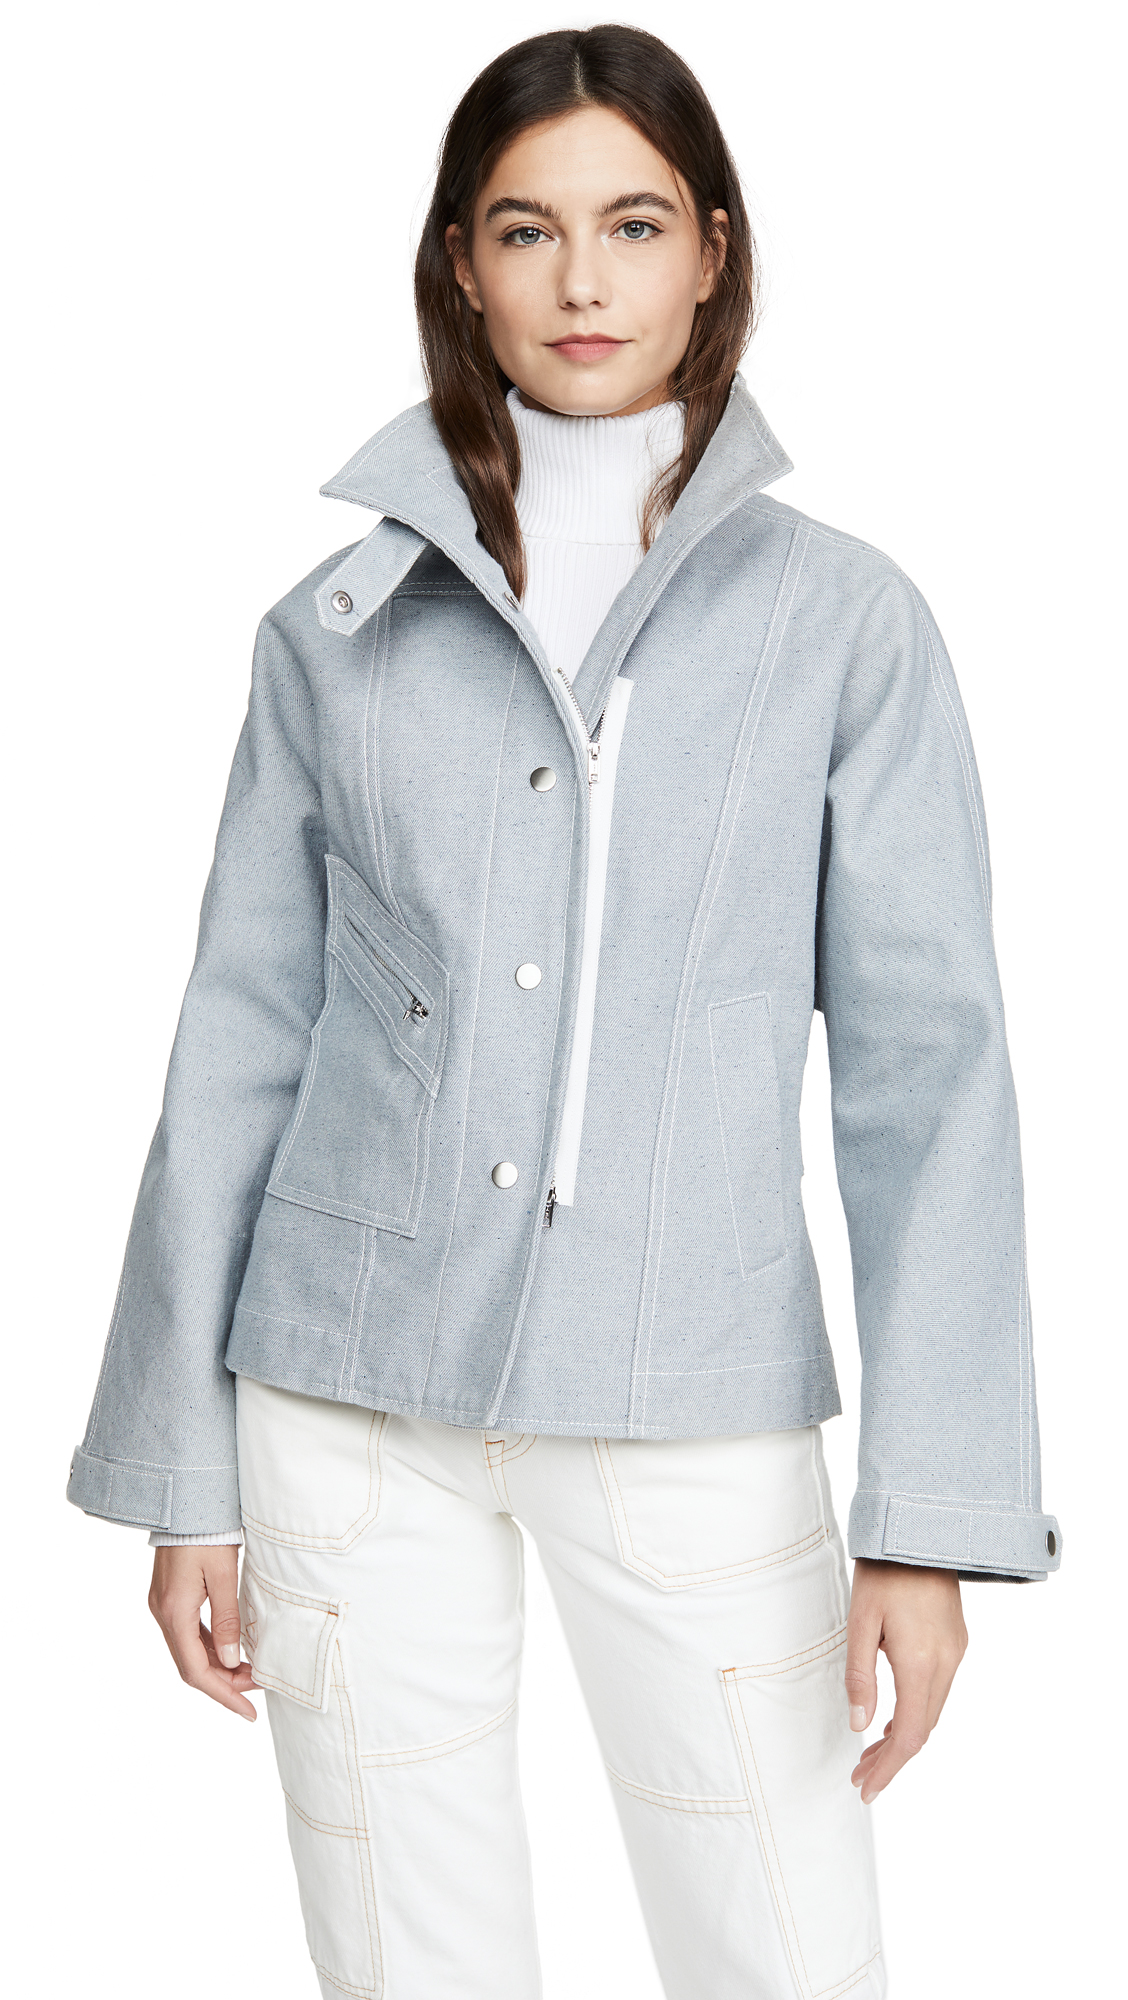 Buy 3.1 Phillip Lim Denim Biker Jacket online beautiful 3.1 Phillip Lim Clothing, Jackets